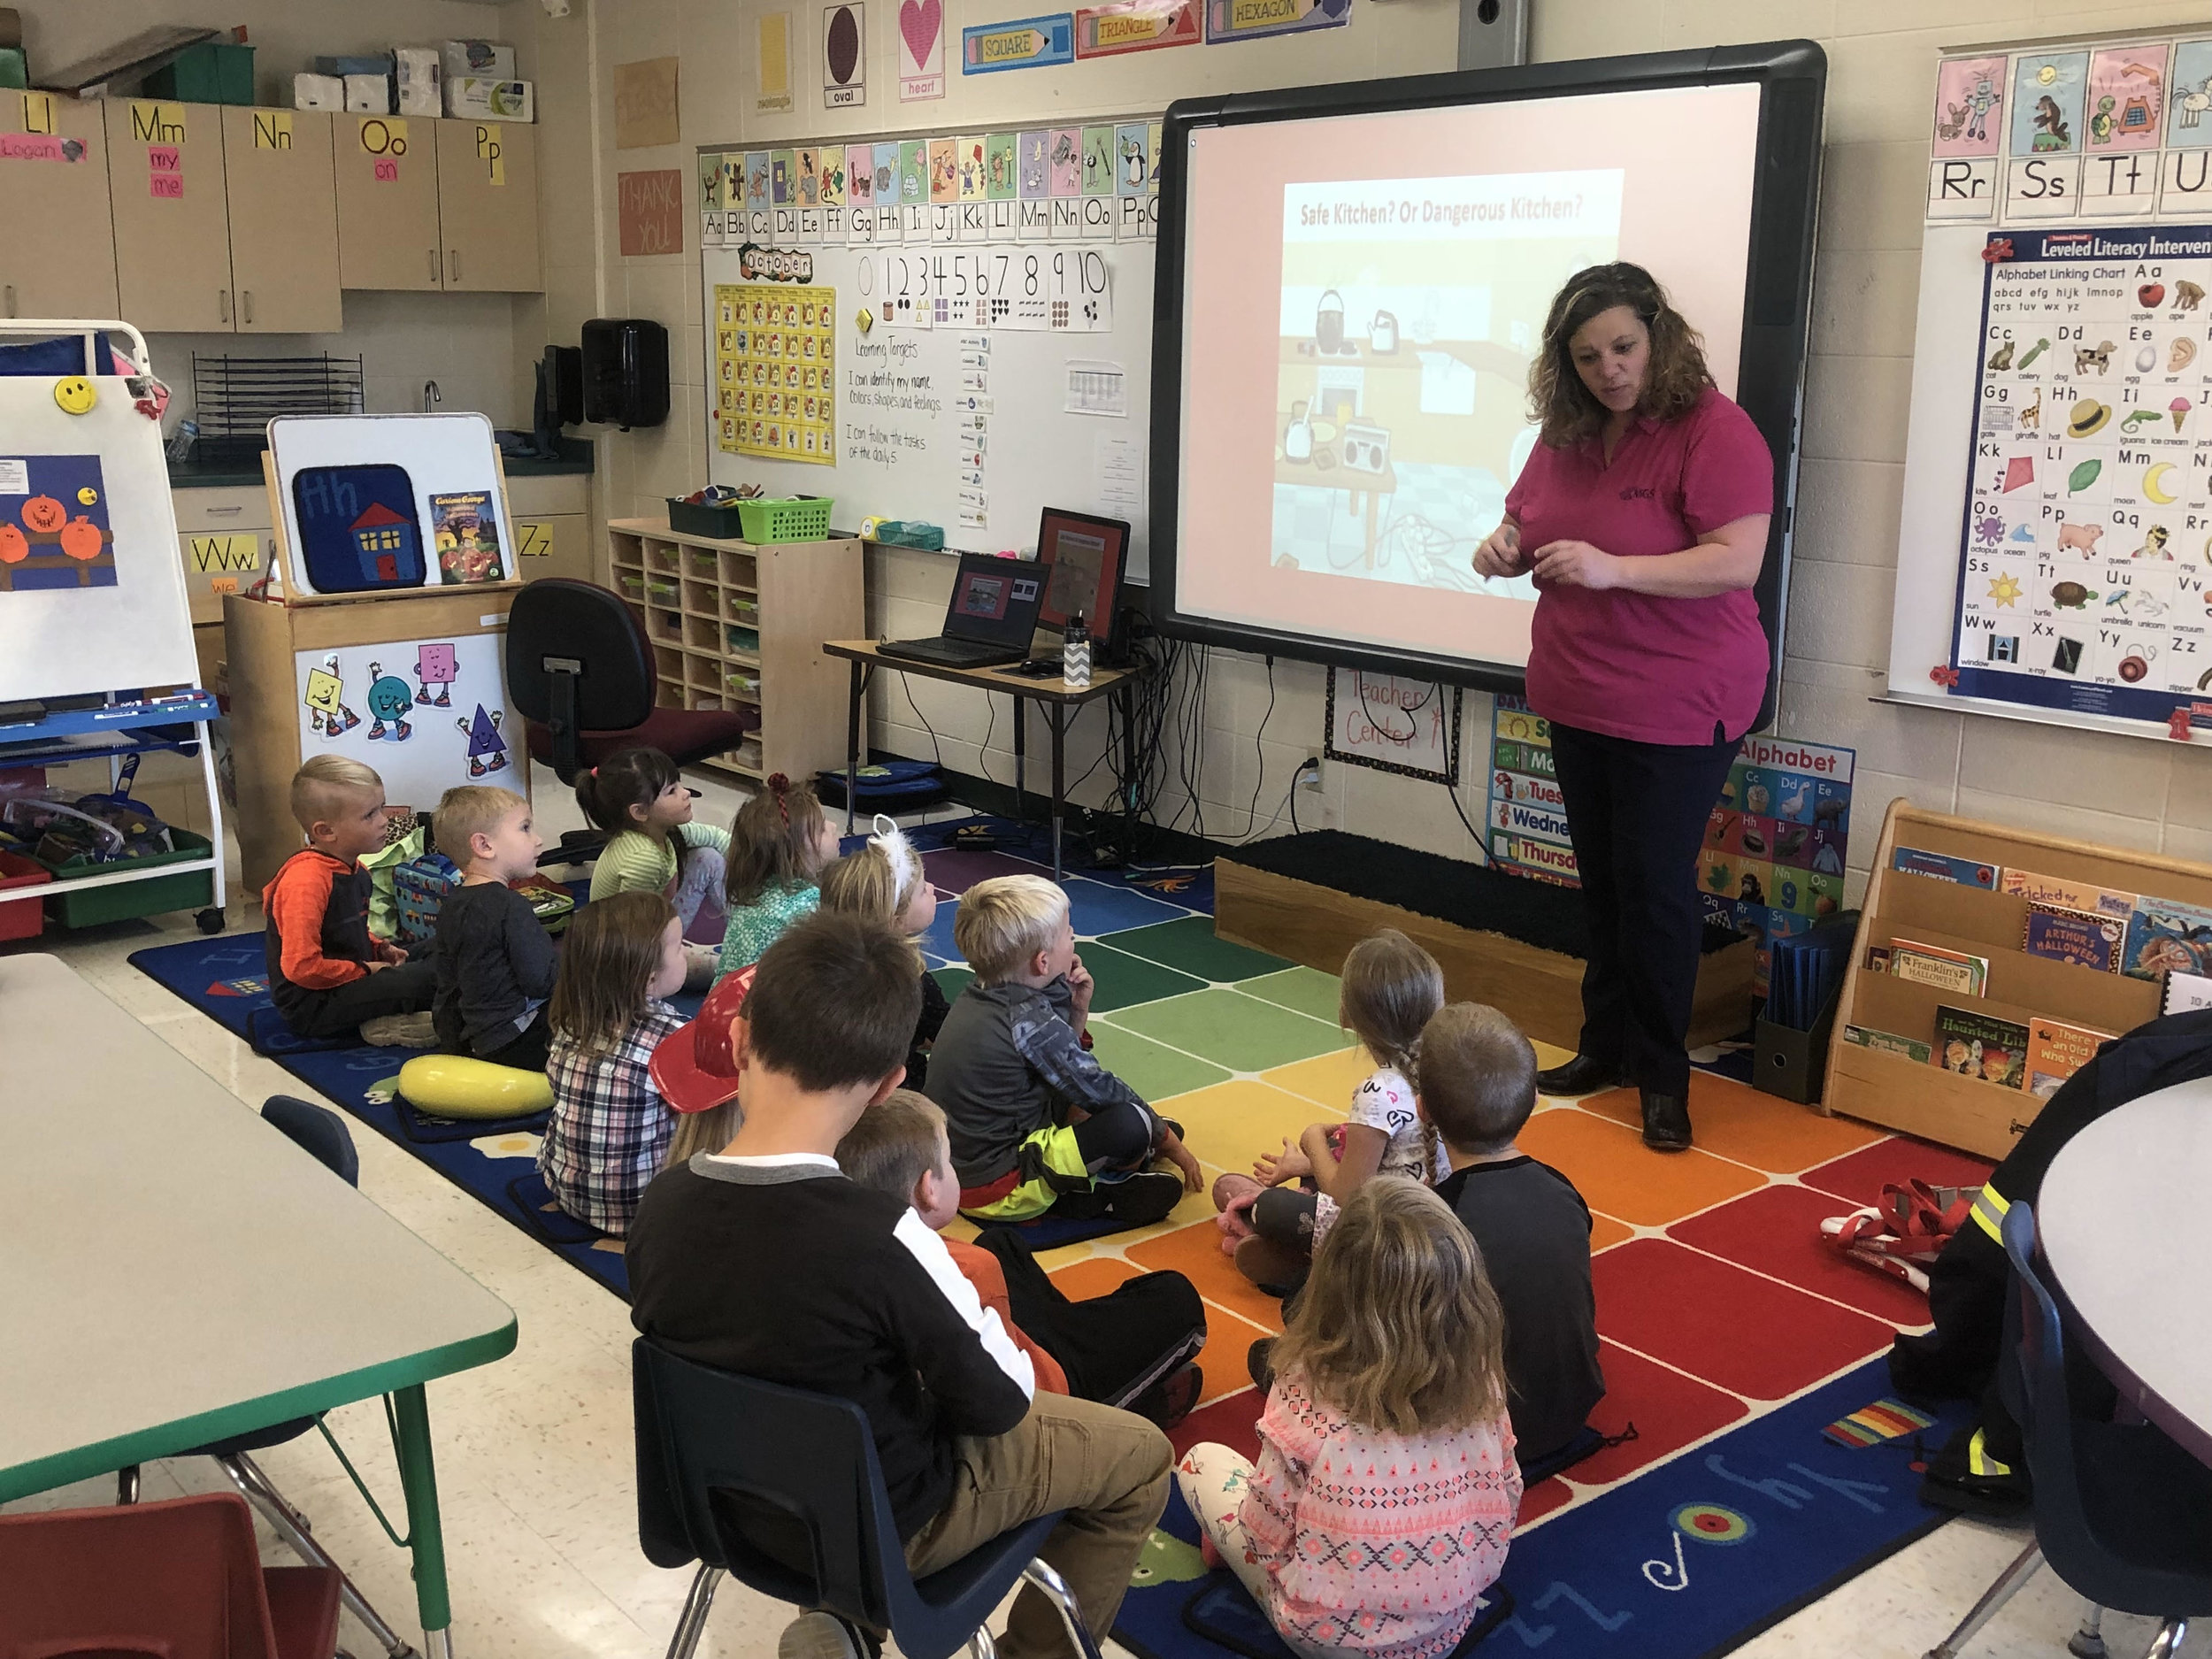 Mrs. Herman taught the class about fire safety